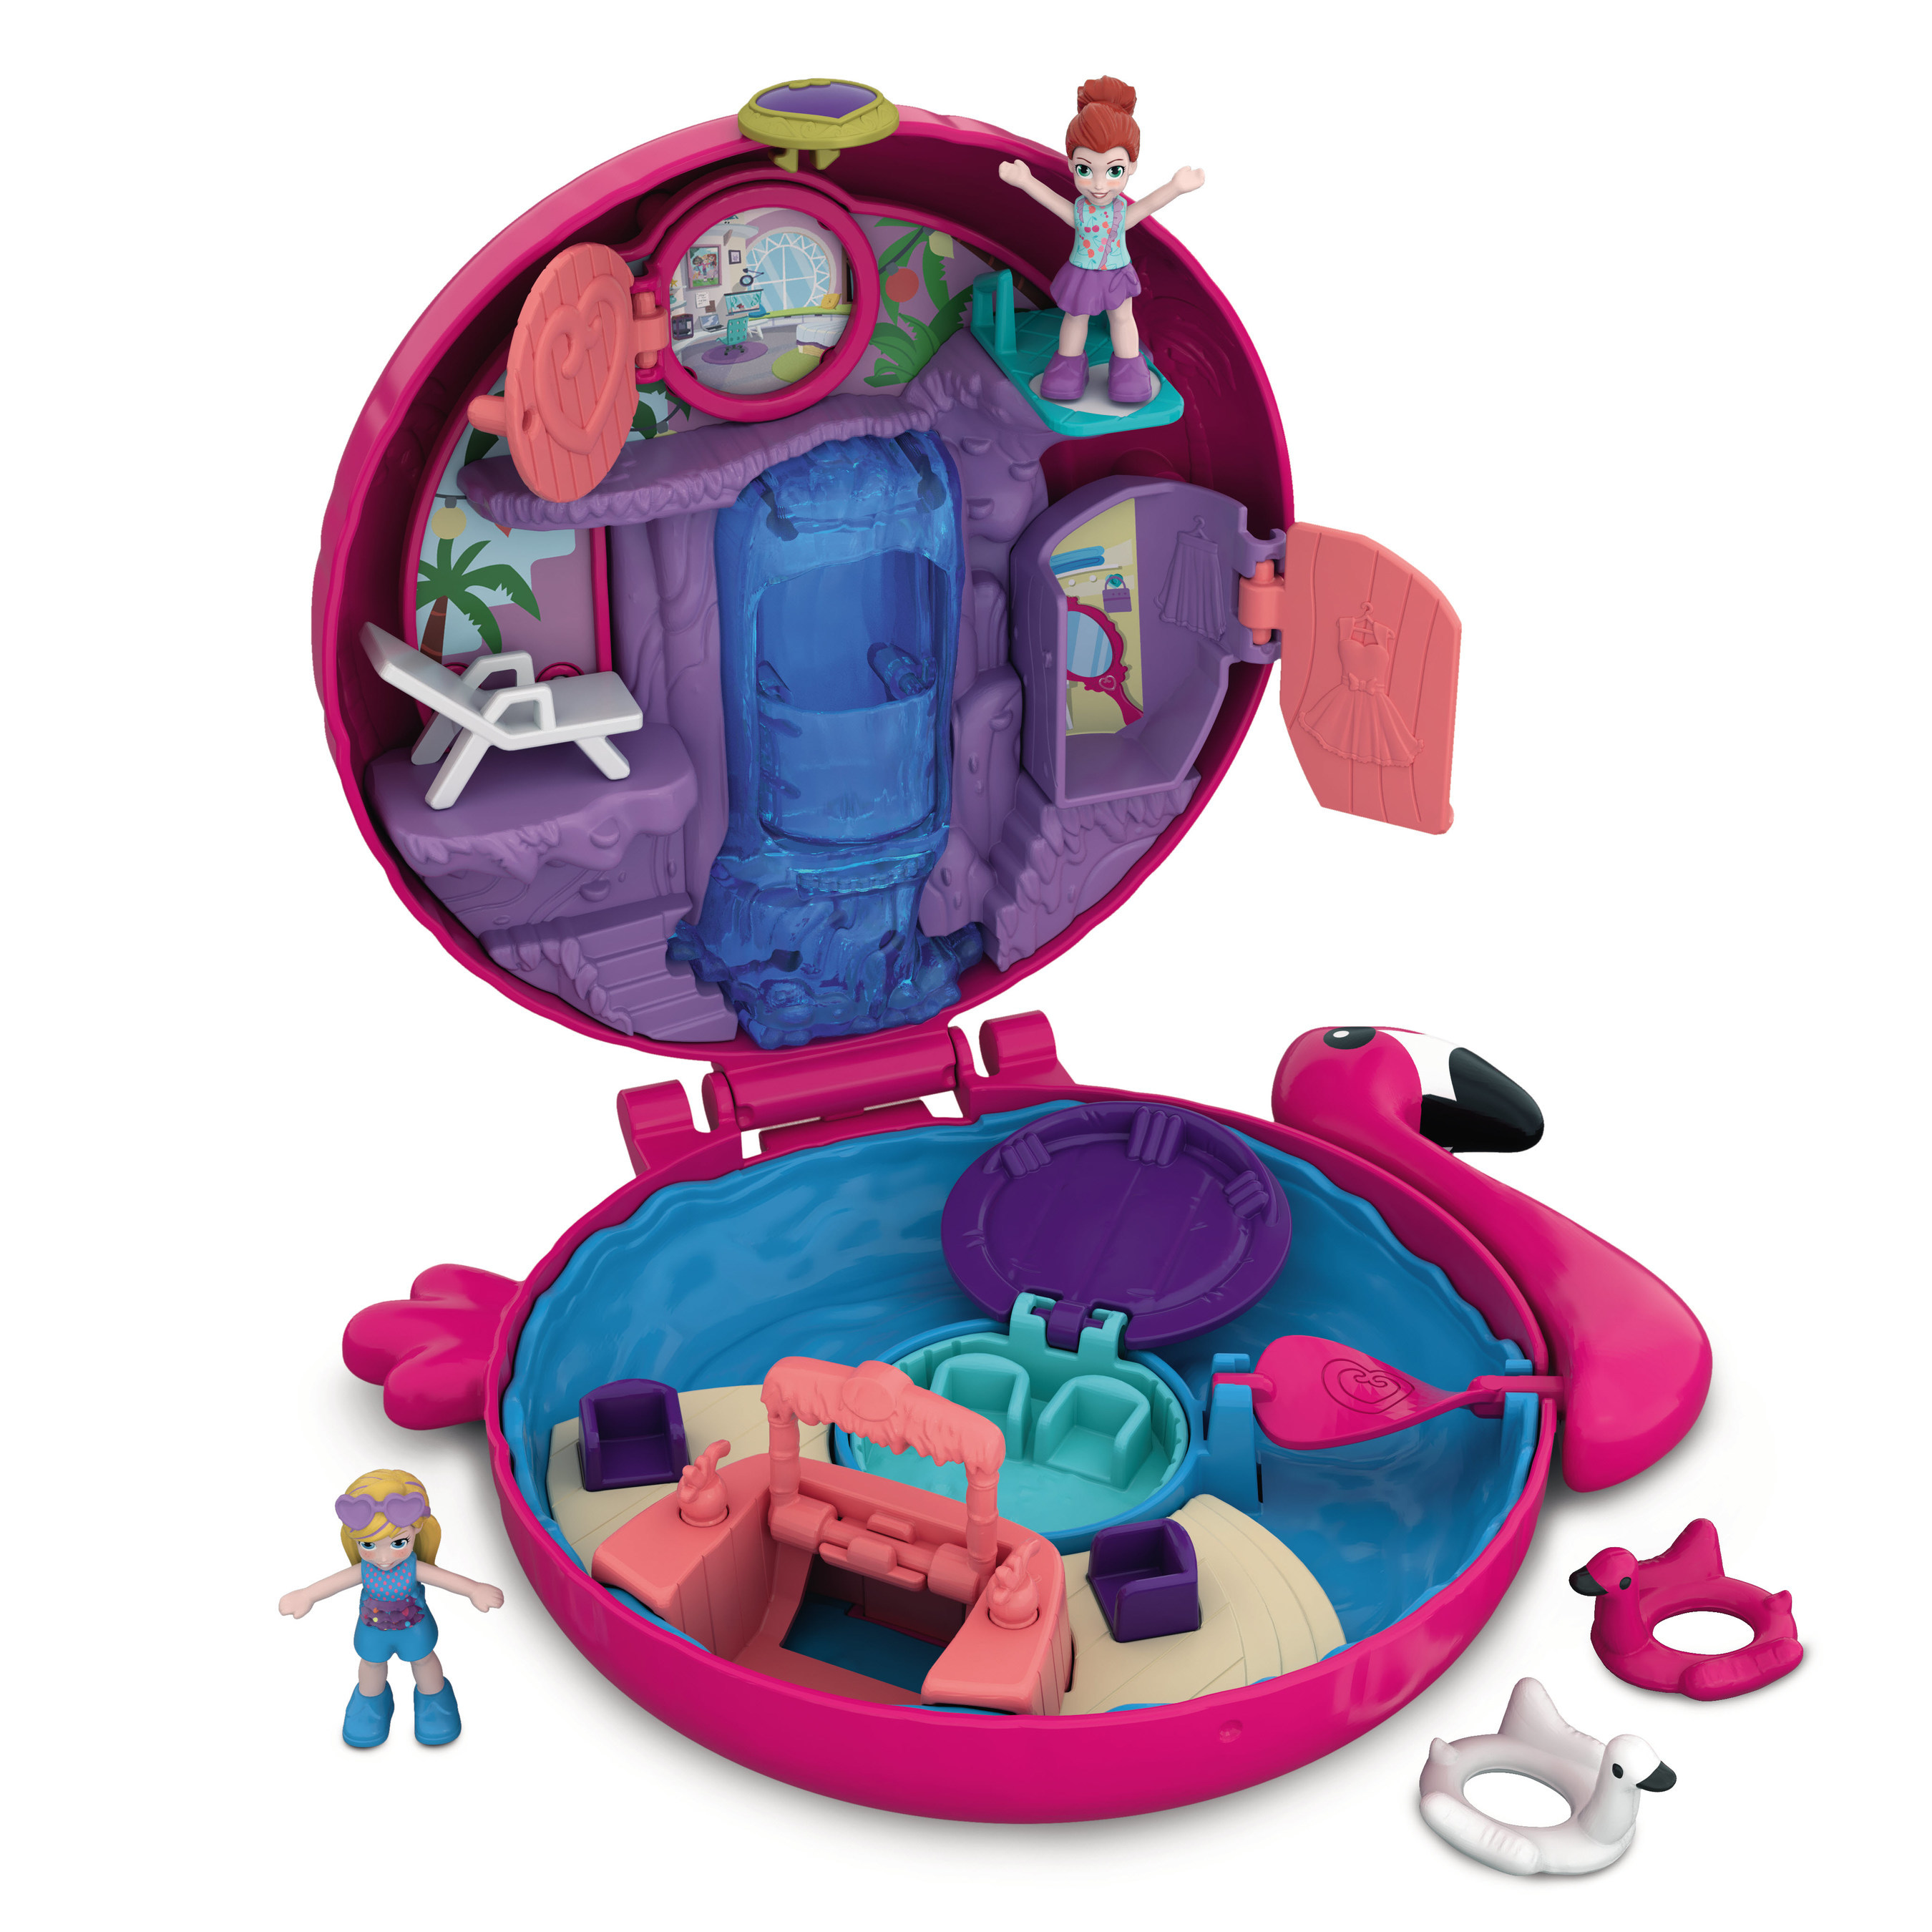 Mattel Polly Pocket toys - Each Polly Pocket Pocket World opens to a specific theme such as a Snow Globe, Mall, and Music Box. Each compact has secret reveals and is full of adventures waiting to be discovered. #toys #dolls #pollypocket #christmas